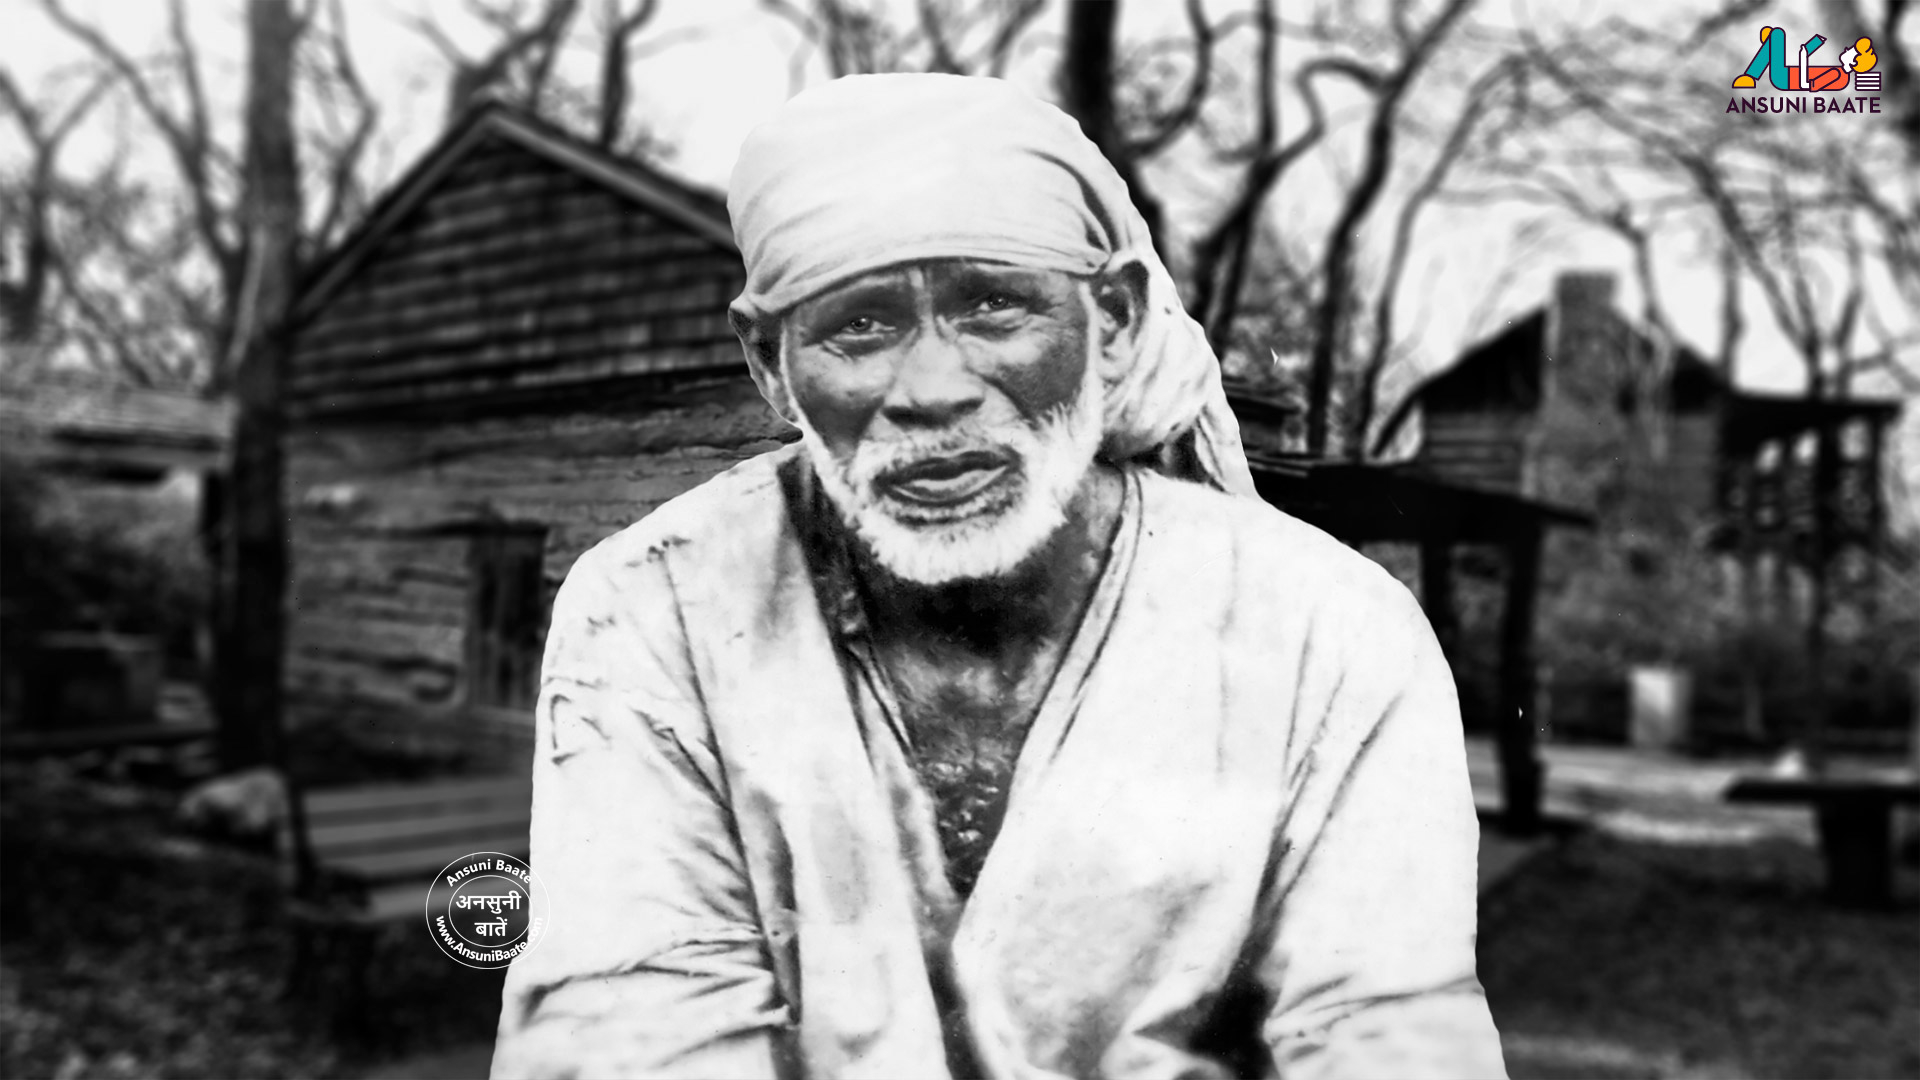 Sai Baba Images Photos Gallery And Wallpapers Ansunibaate